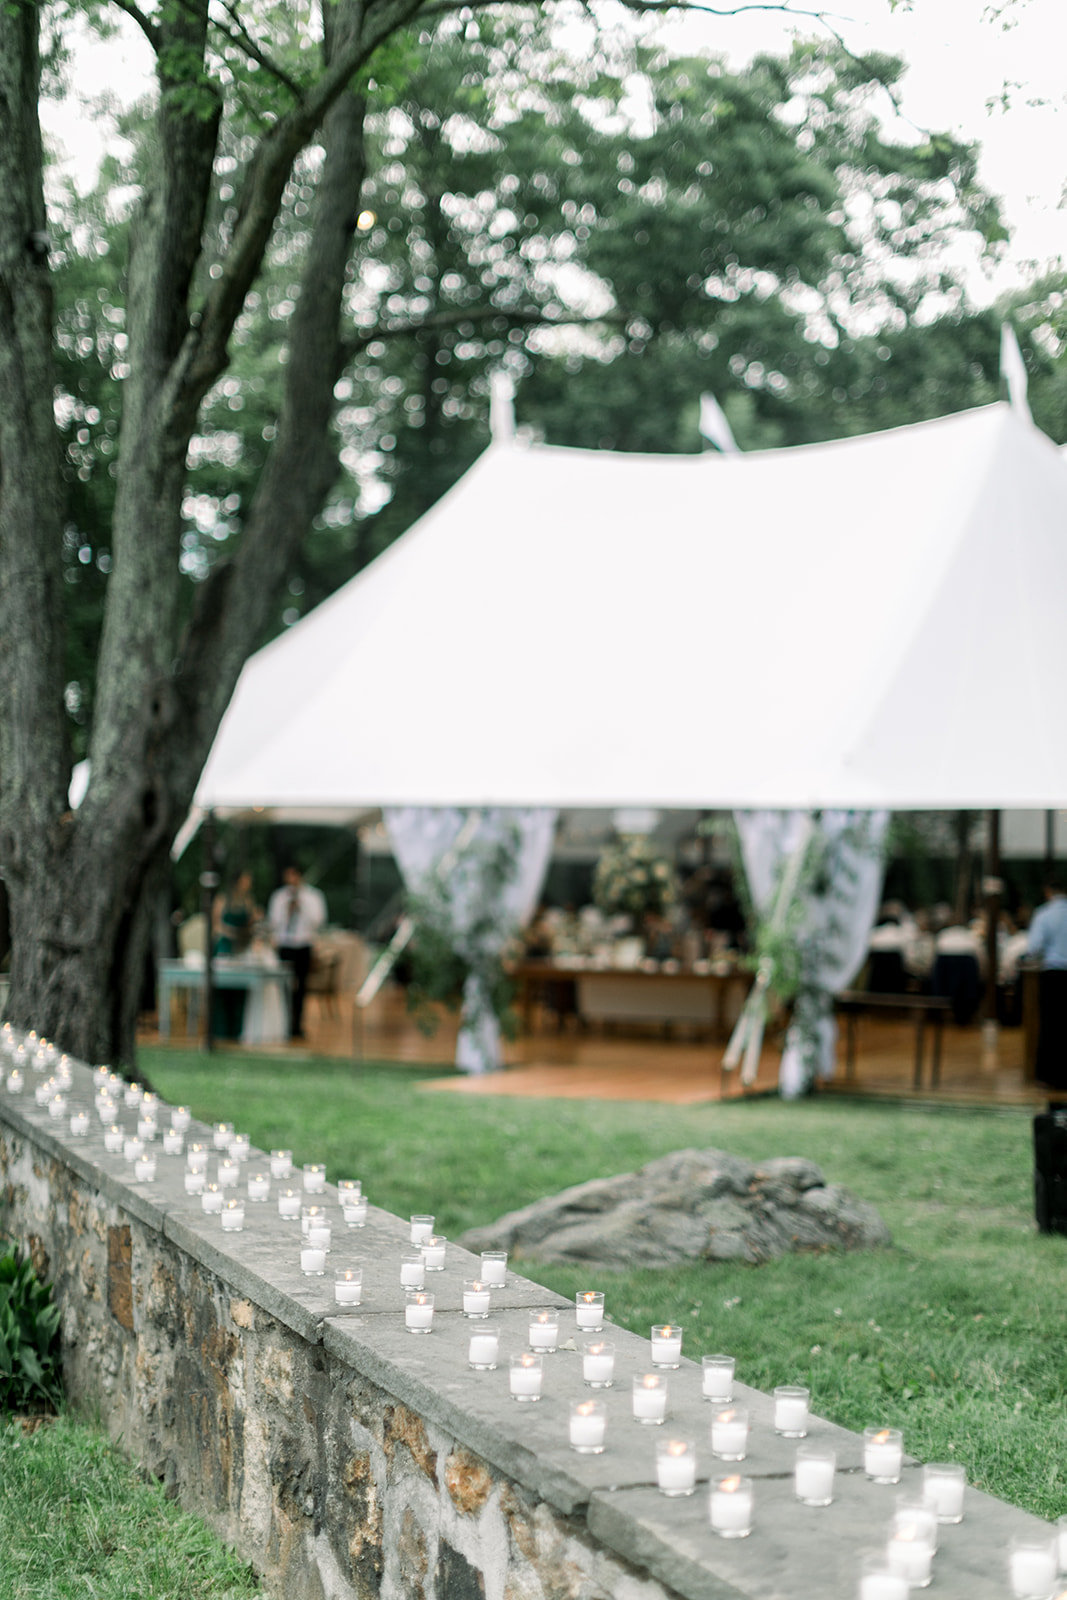 Alica-Daw-Photography-Monica-Relyea-Events-Glynwood-Farm-Cold-Spring-New-York-Hudson-Valley-Wedding-Planner-Tent-Sam_+_Nick_reception-177